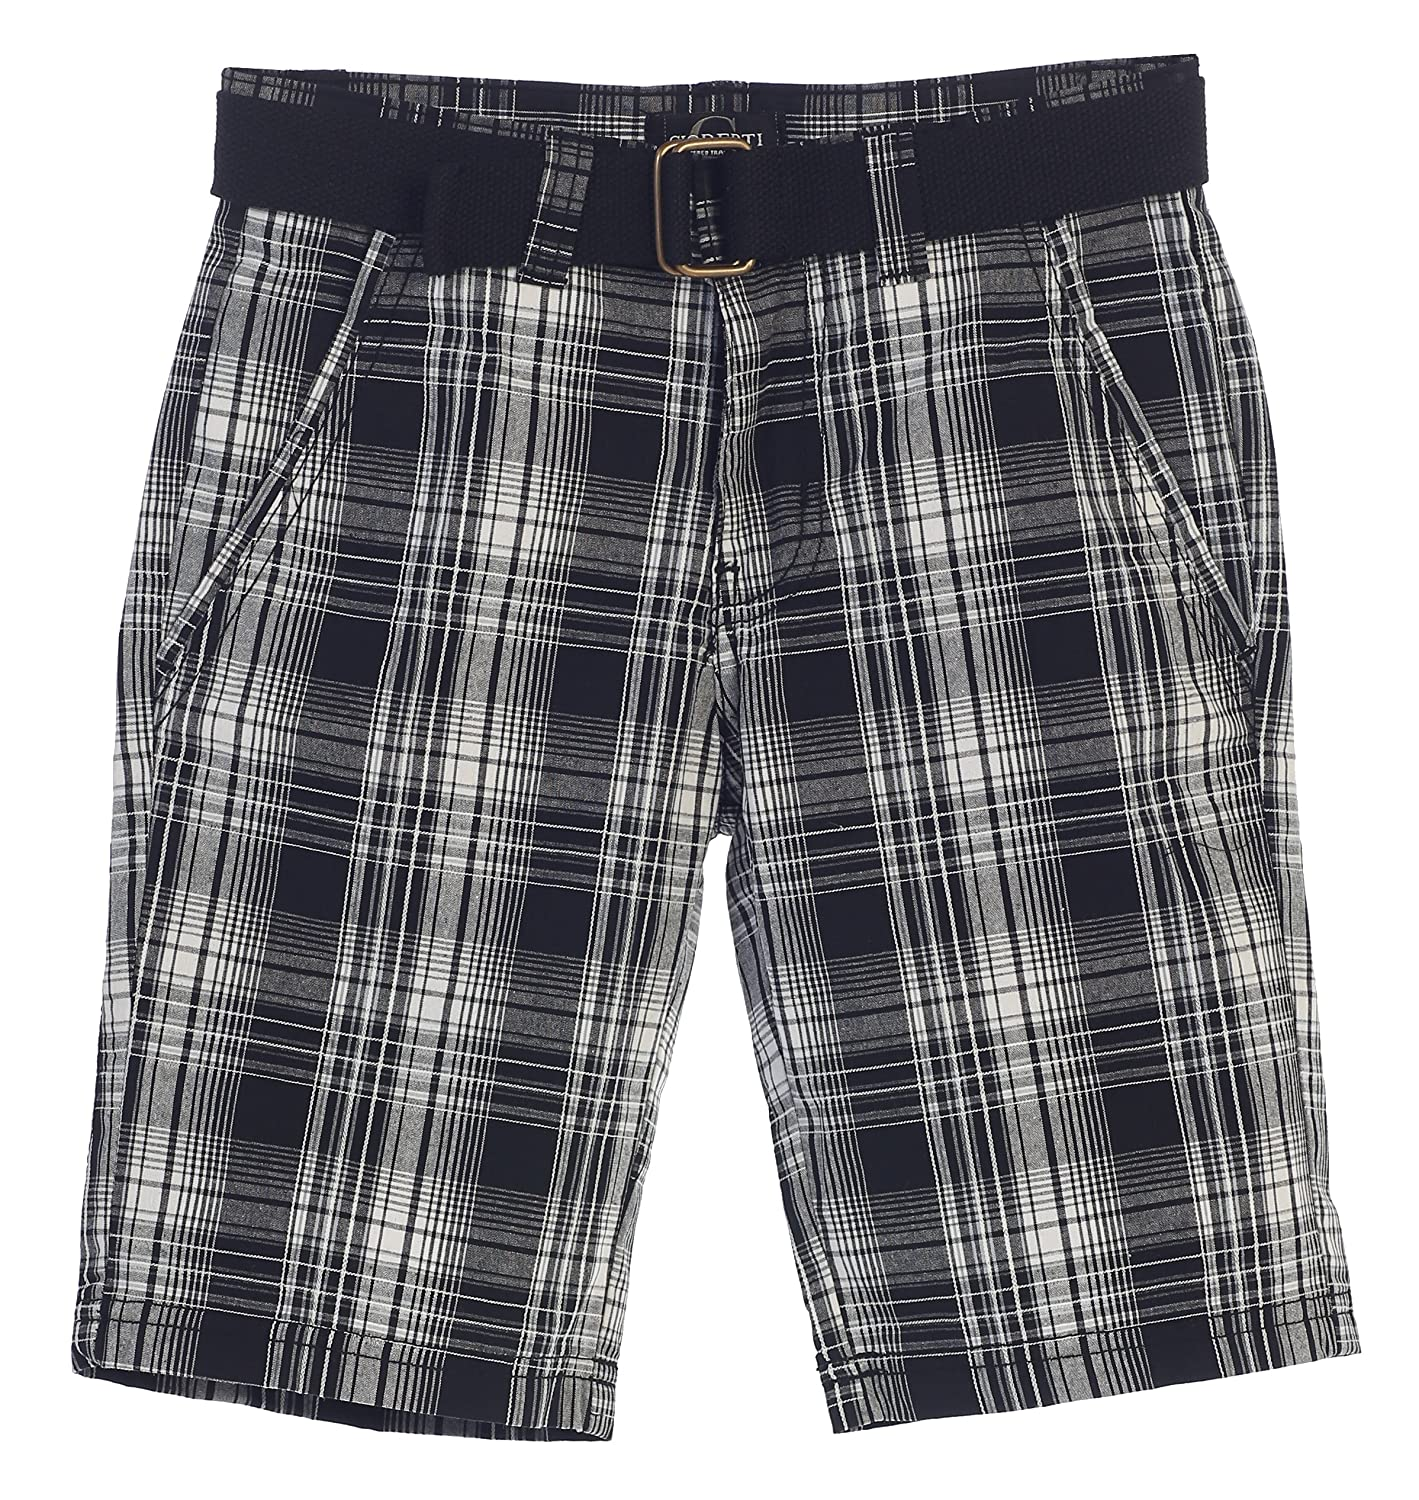 Gioberti Boys Plaid Shorts With Front Button & Zipper and Belt Loop Waistband